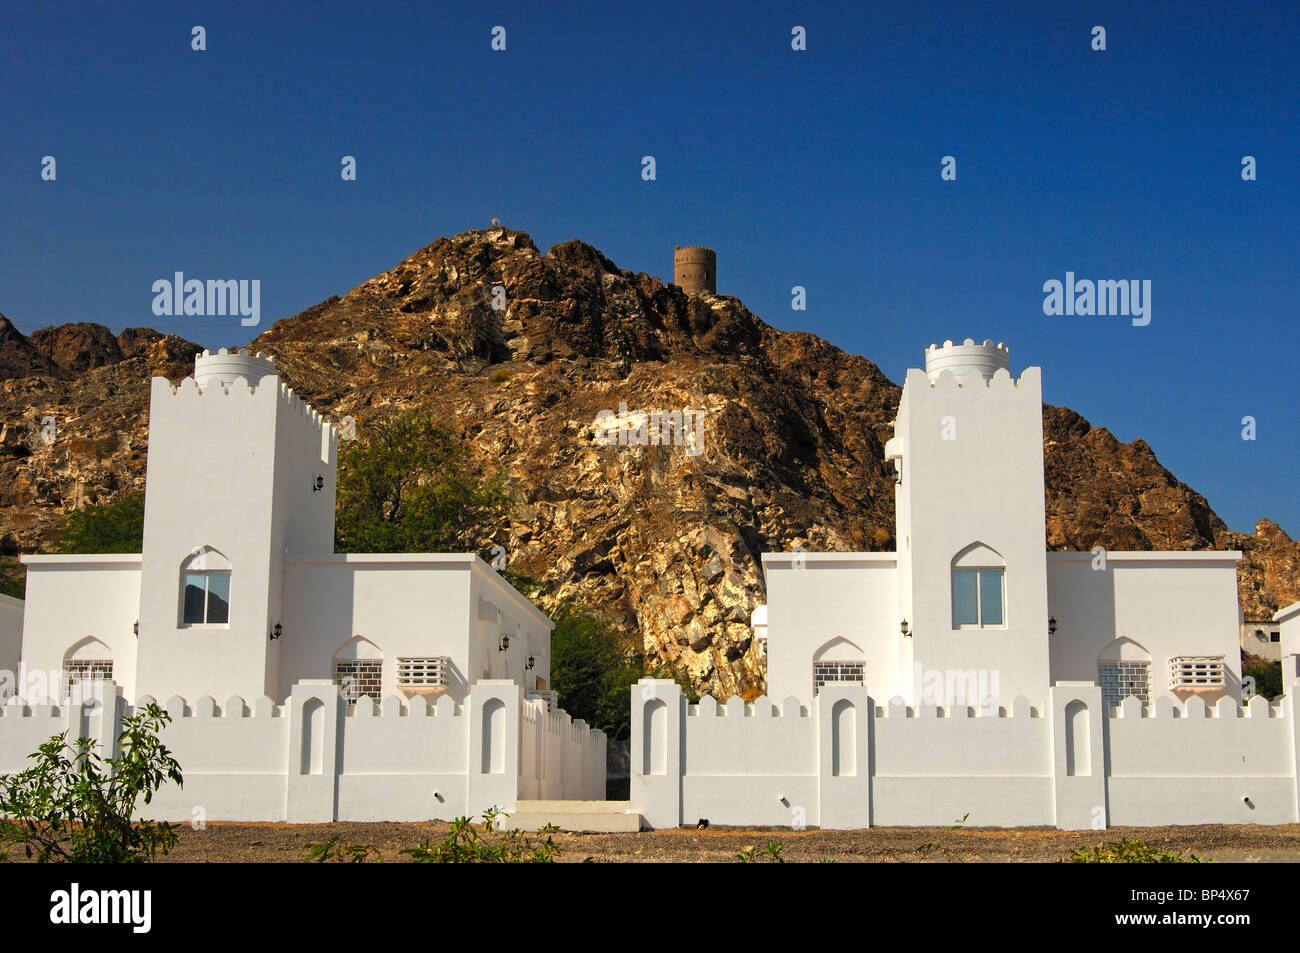 New family homes beneath an old fortress in the periphery of Muscat, Sultanate of Oman - Stock Image